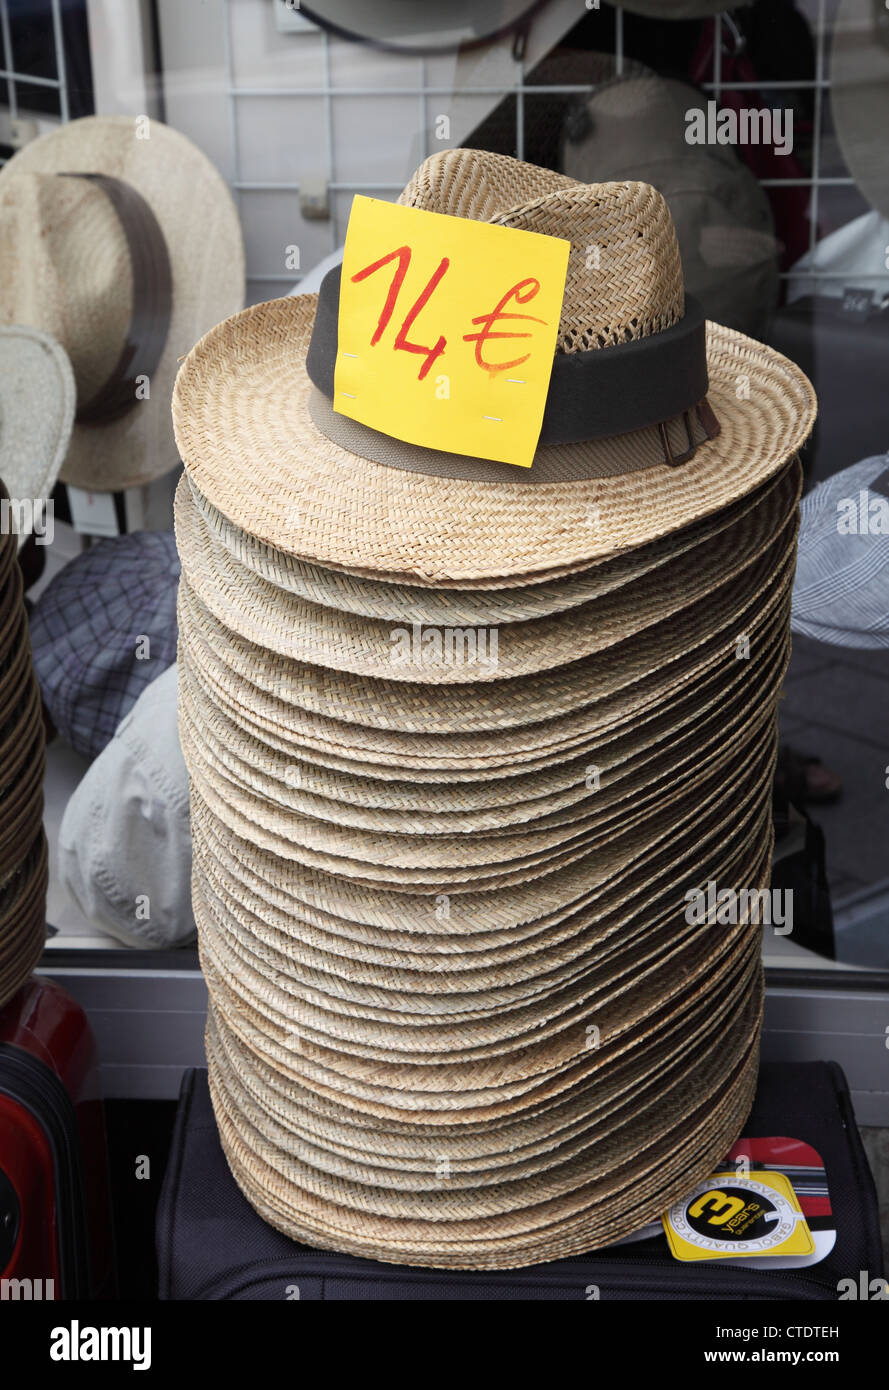 Stack of straw panama hats or boaters within a shop in France - Stock Image